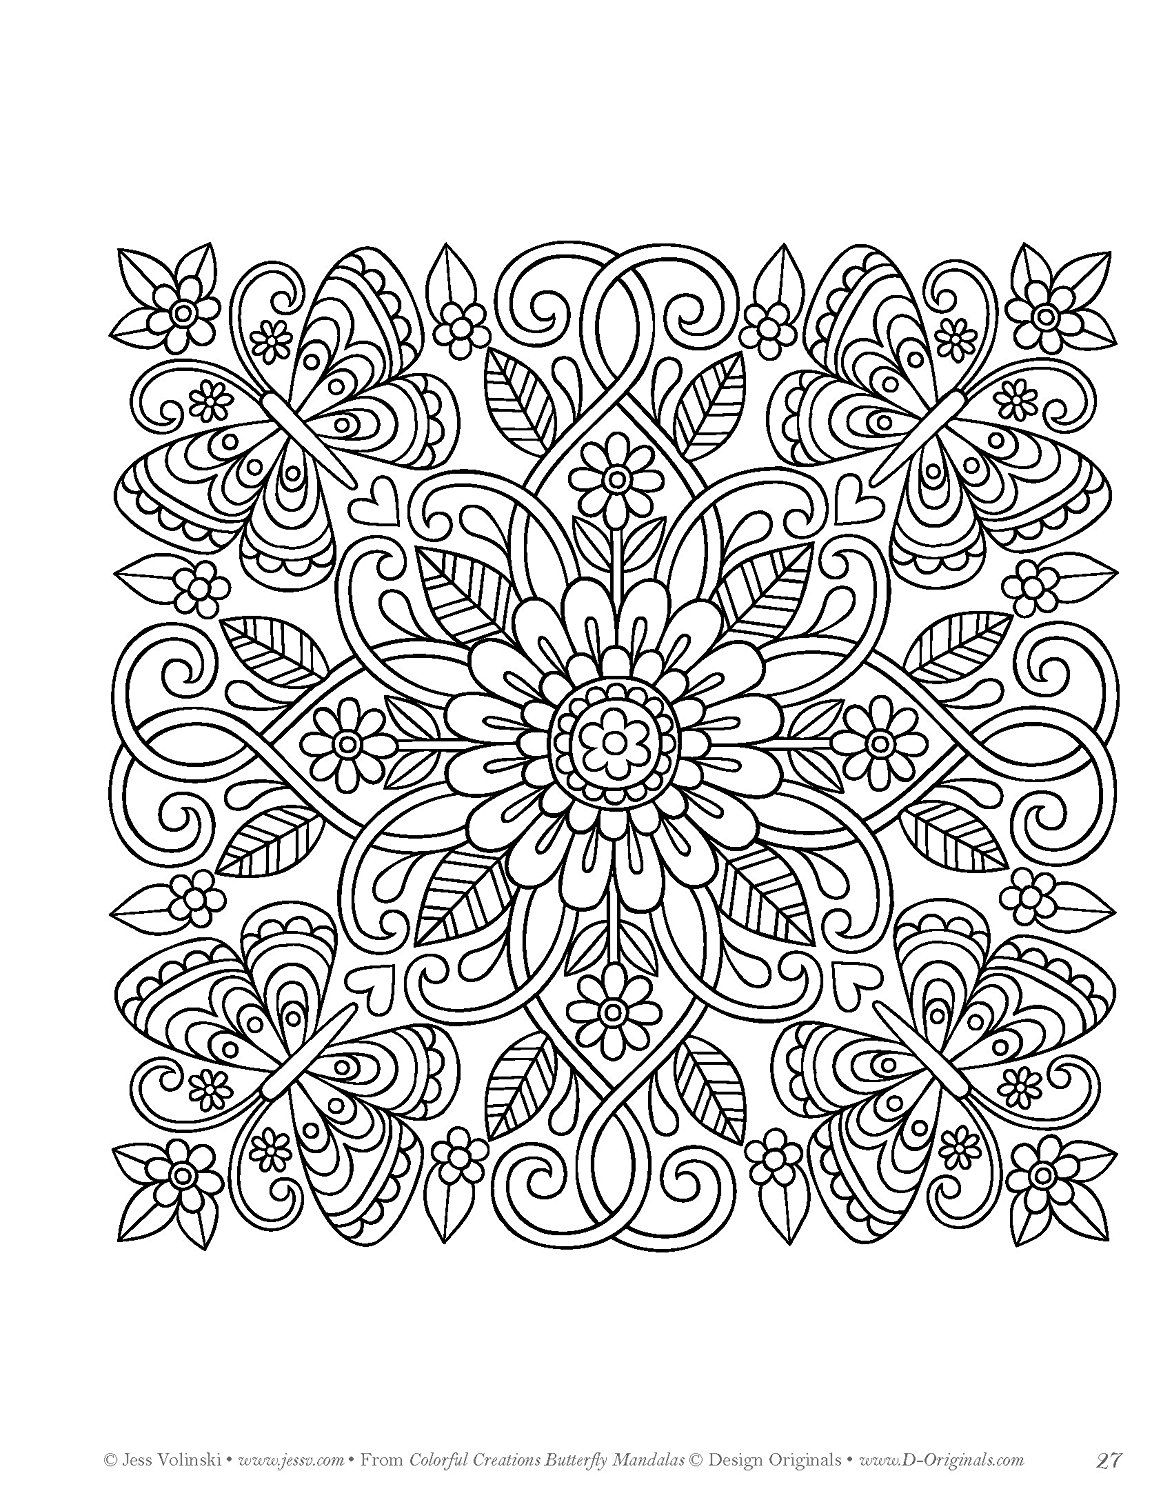 Colorful Creations Butterfly Mandalas Coloring Book Pages Designed To Inspire Creativity Butterfly Coloring Page Mandala Coloring Pages Pattern Coloring Pages